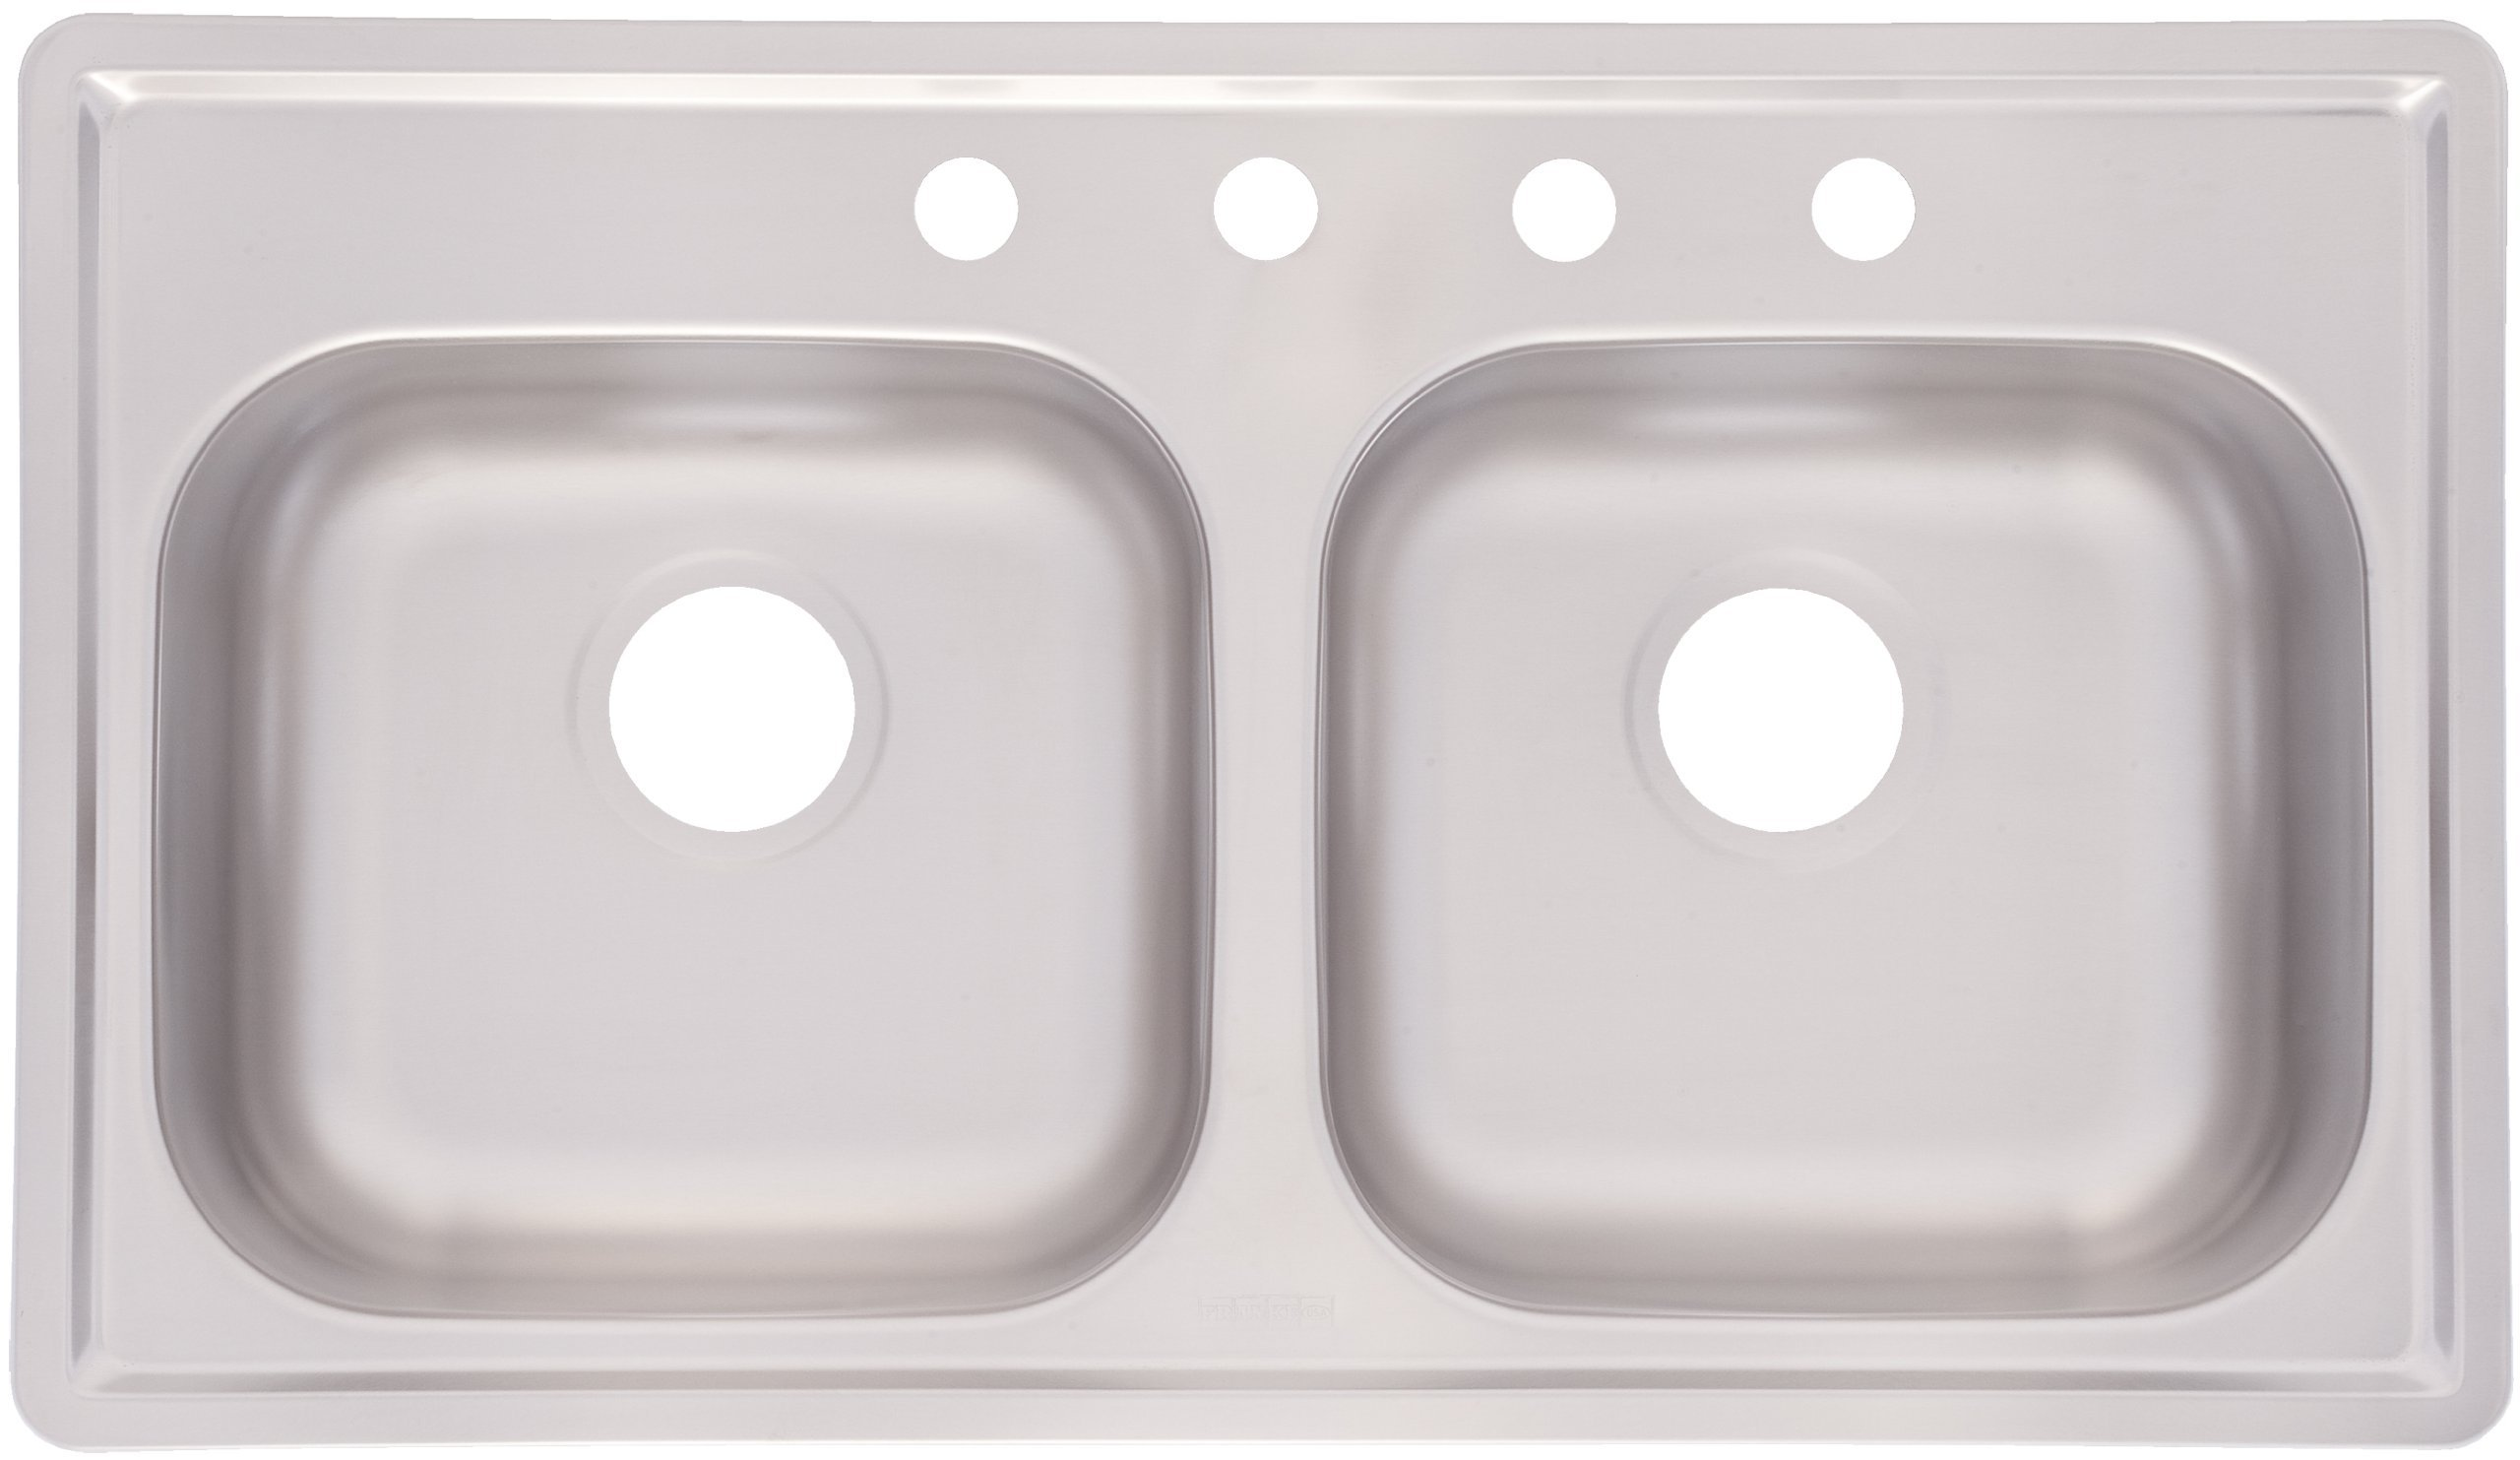 Kindred FMSB654NB Double Bowl Stainless Steel 33 x 19-Inch Top-mount Sink (Renewed)